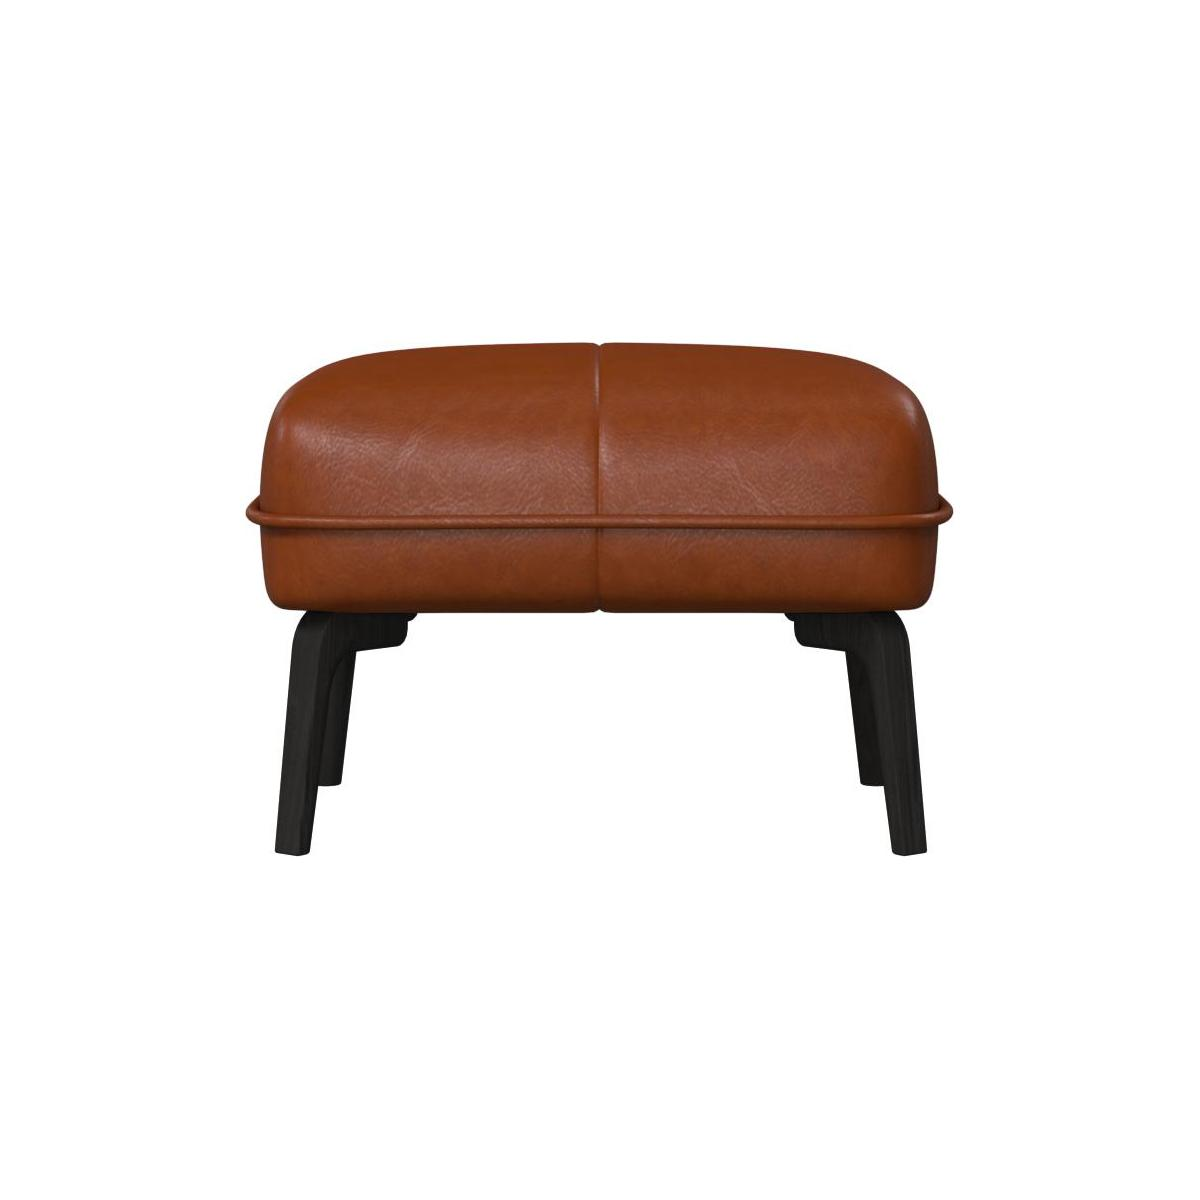 Footstool in Vintage aniline leather, old chestnut and dark feet n°3